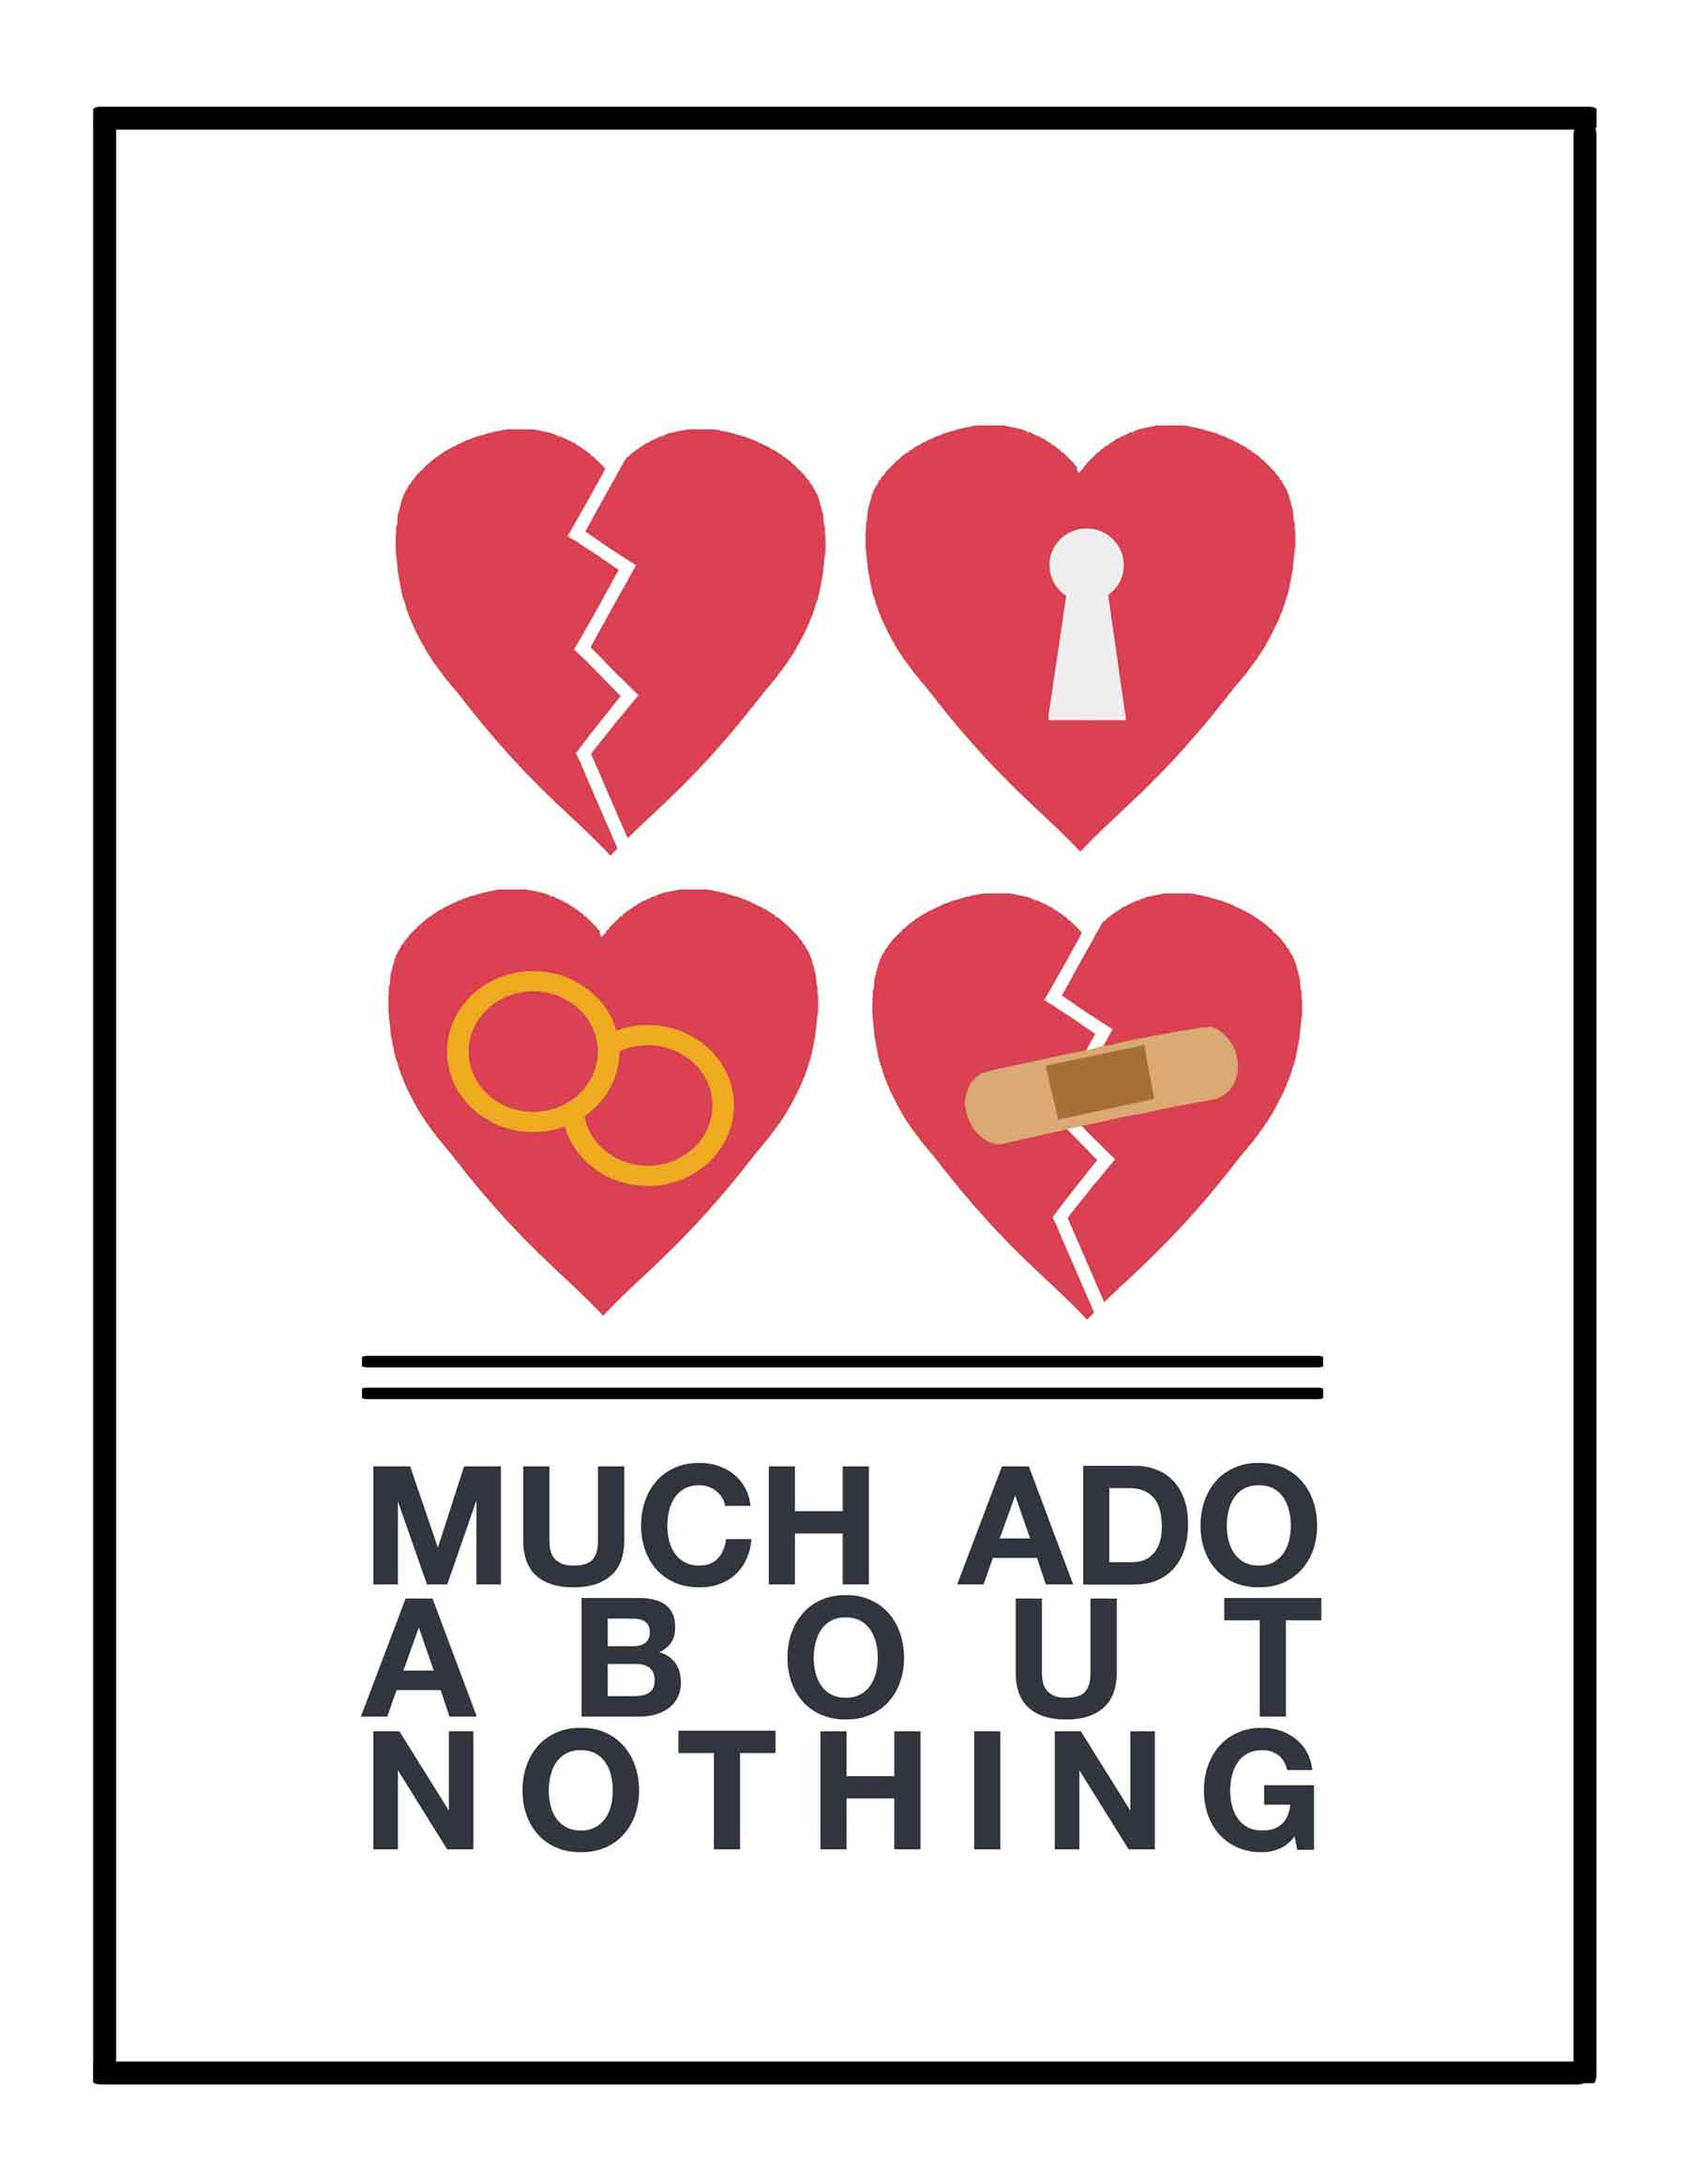 Much Ado About Nothing performed by the Shakespeare at Winedale Summer Class